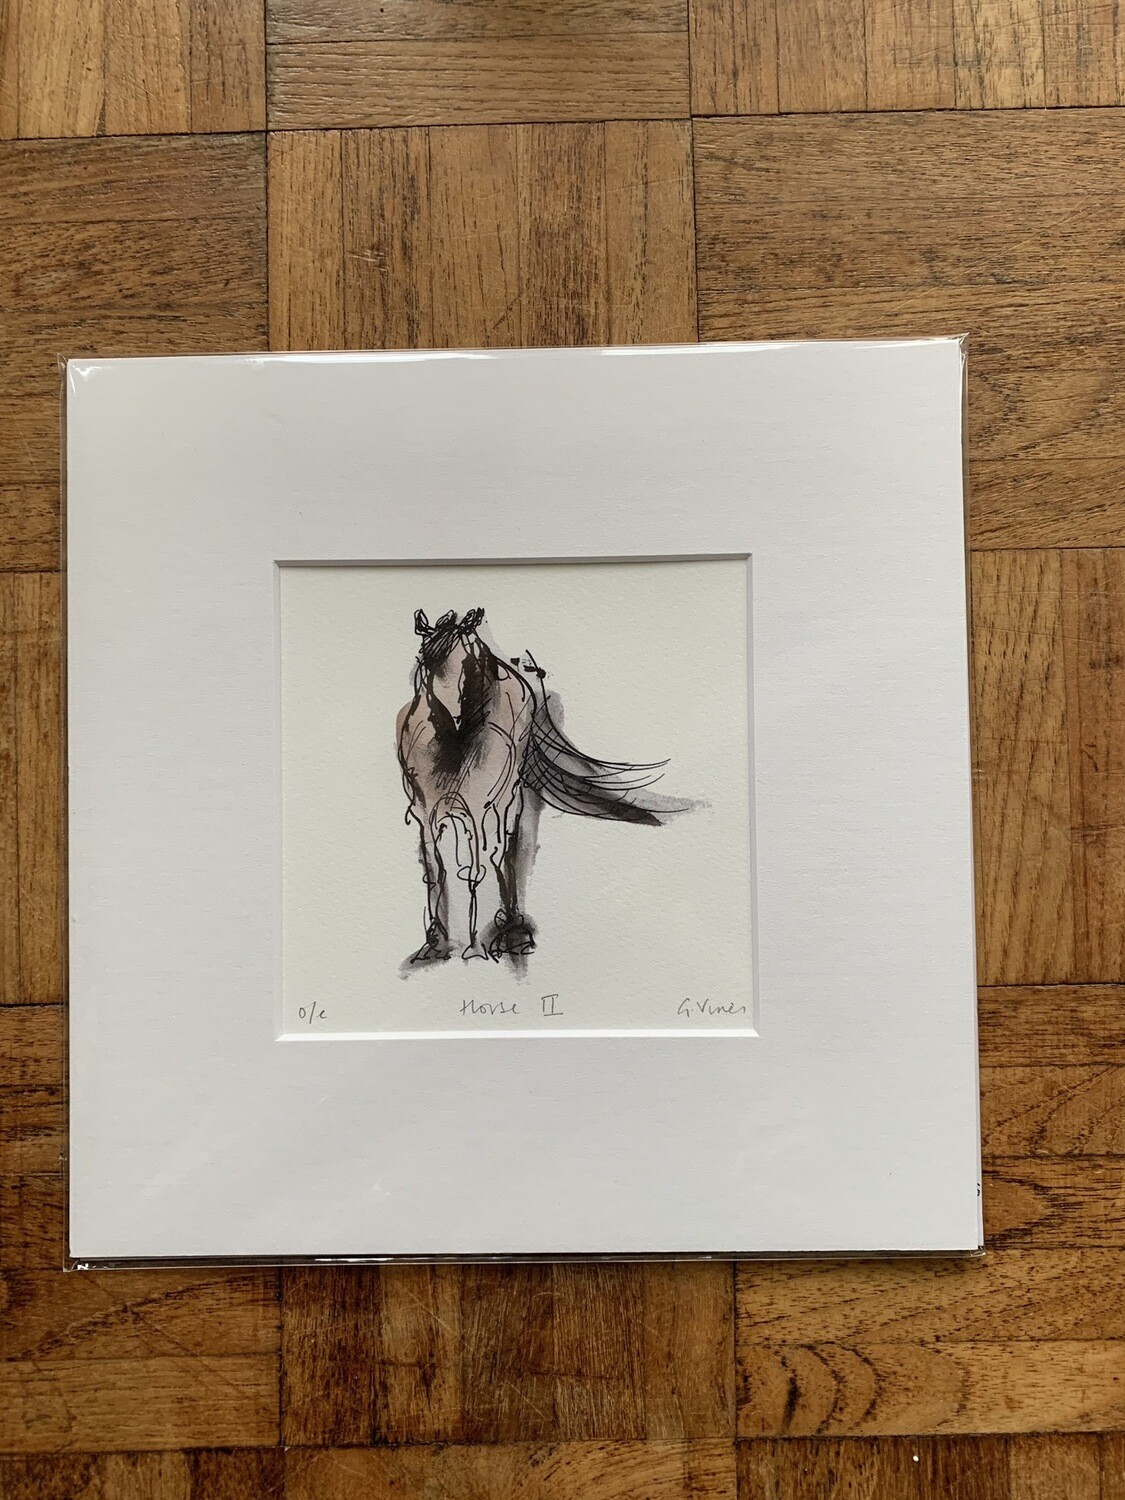 Horse II by Gill Vines